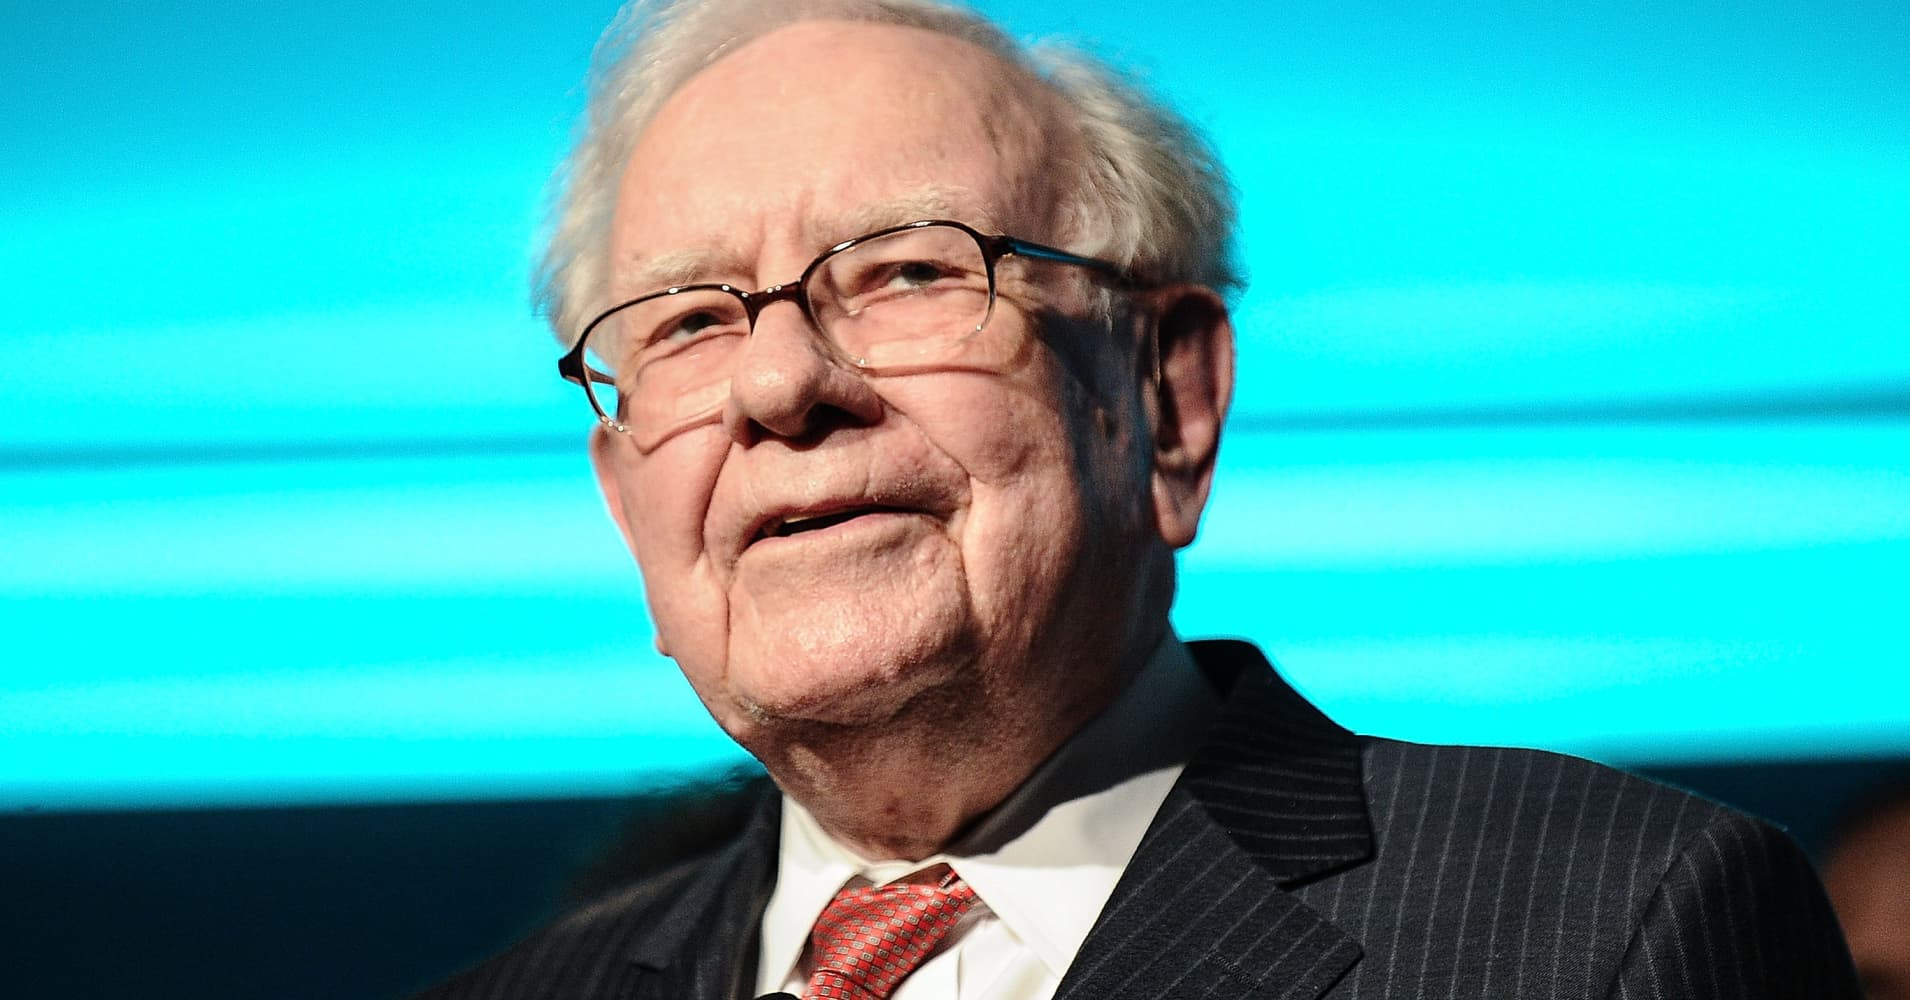 Warren Buffett describes a pivotal moment when he was 20 years old that changed the course of his career